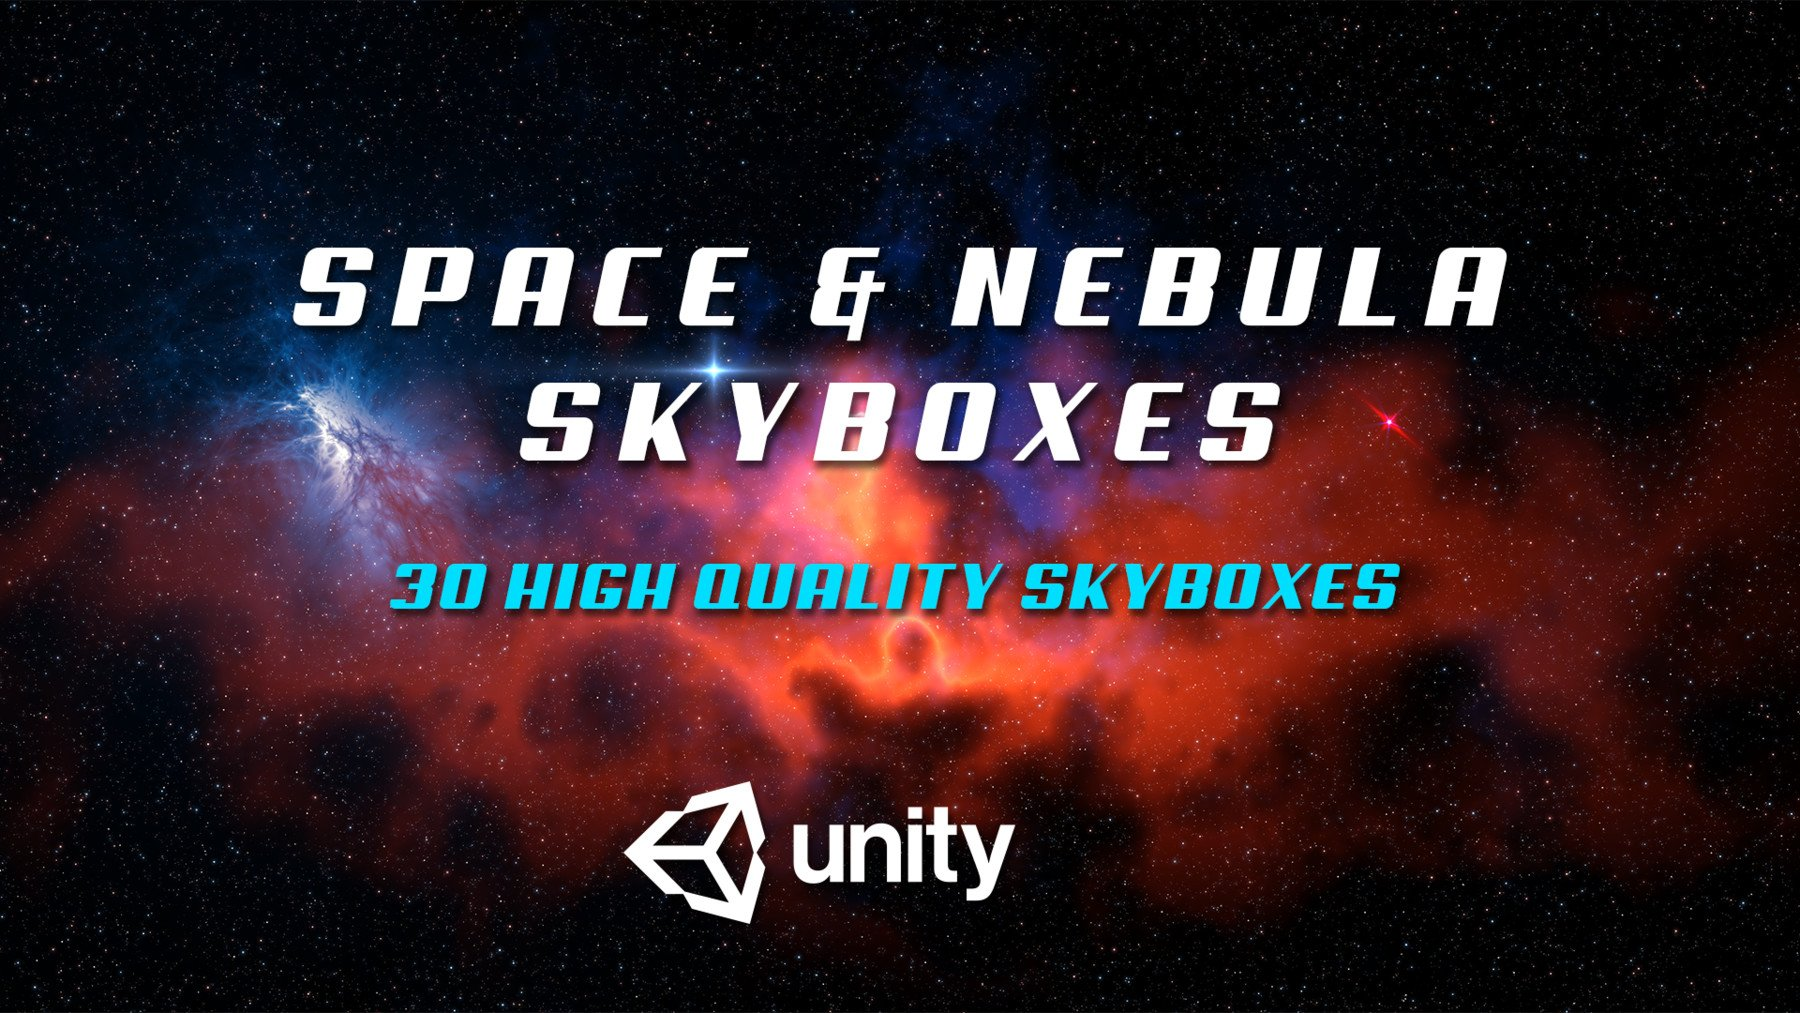 Space & Nebula Skyboxed for Unity 3D engine by Antonis Fassolas